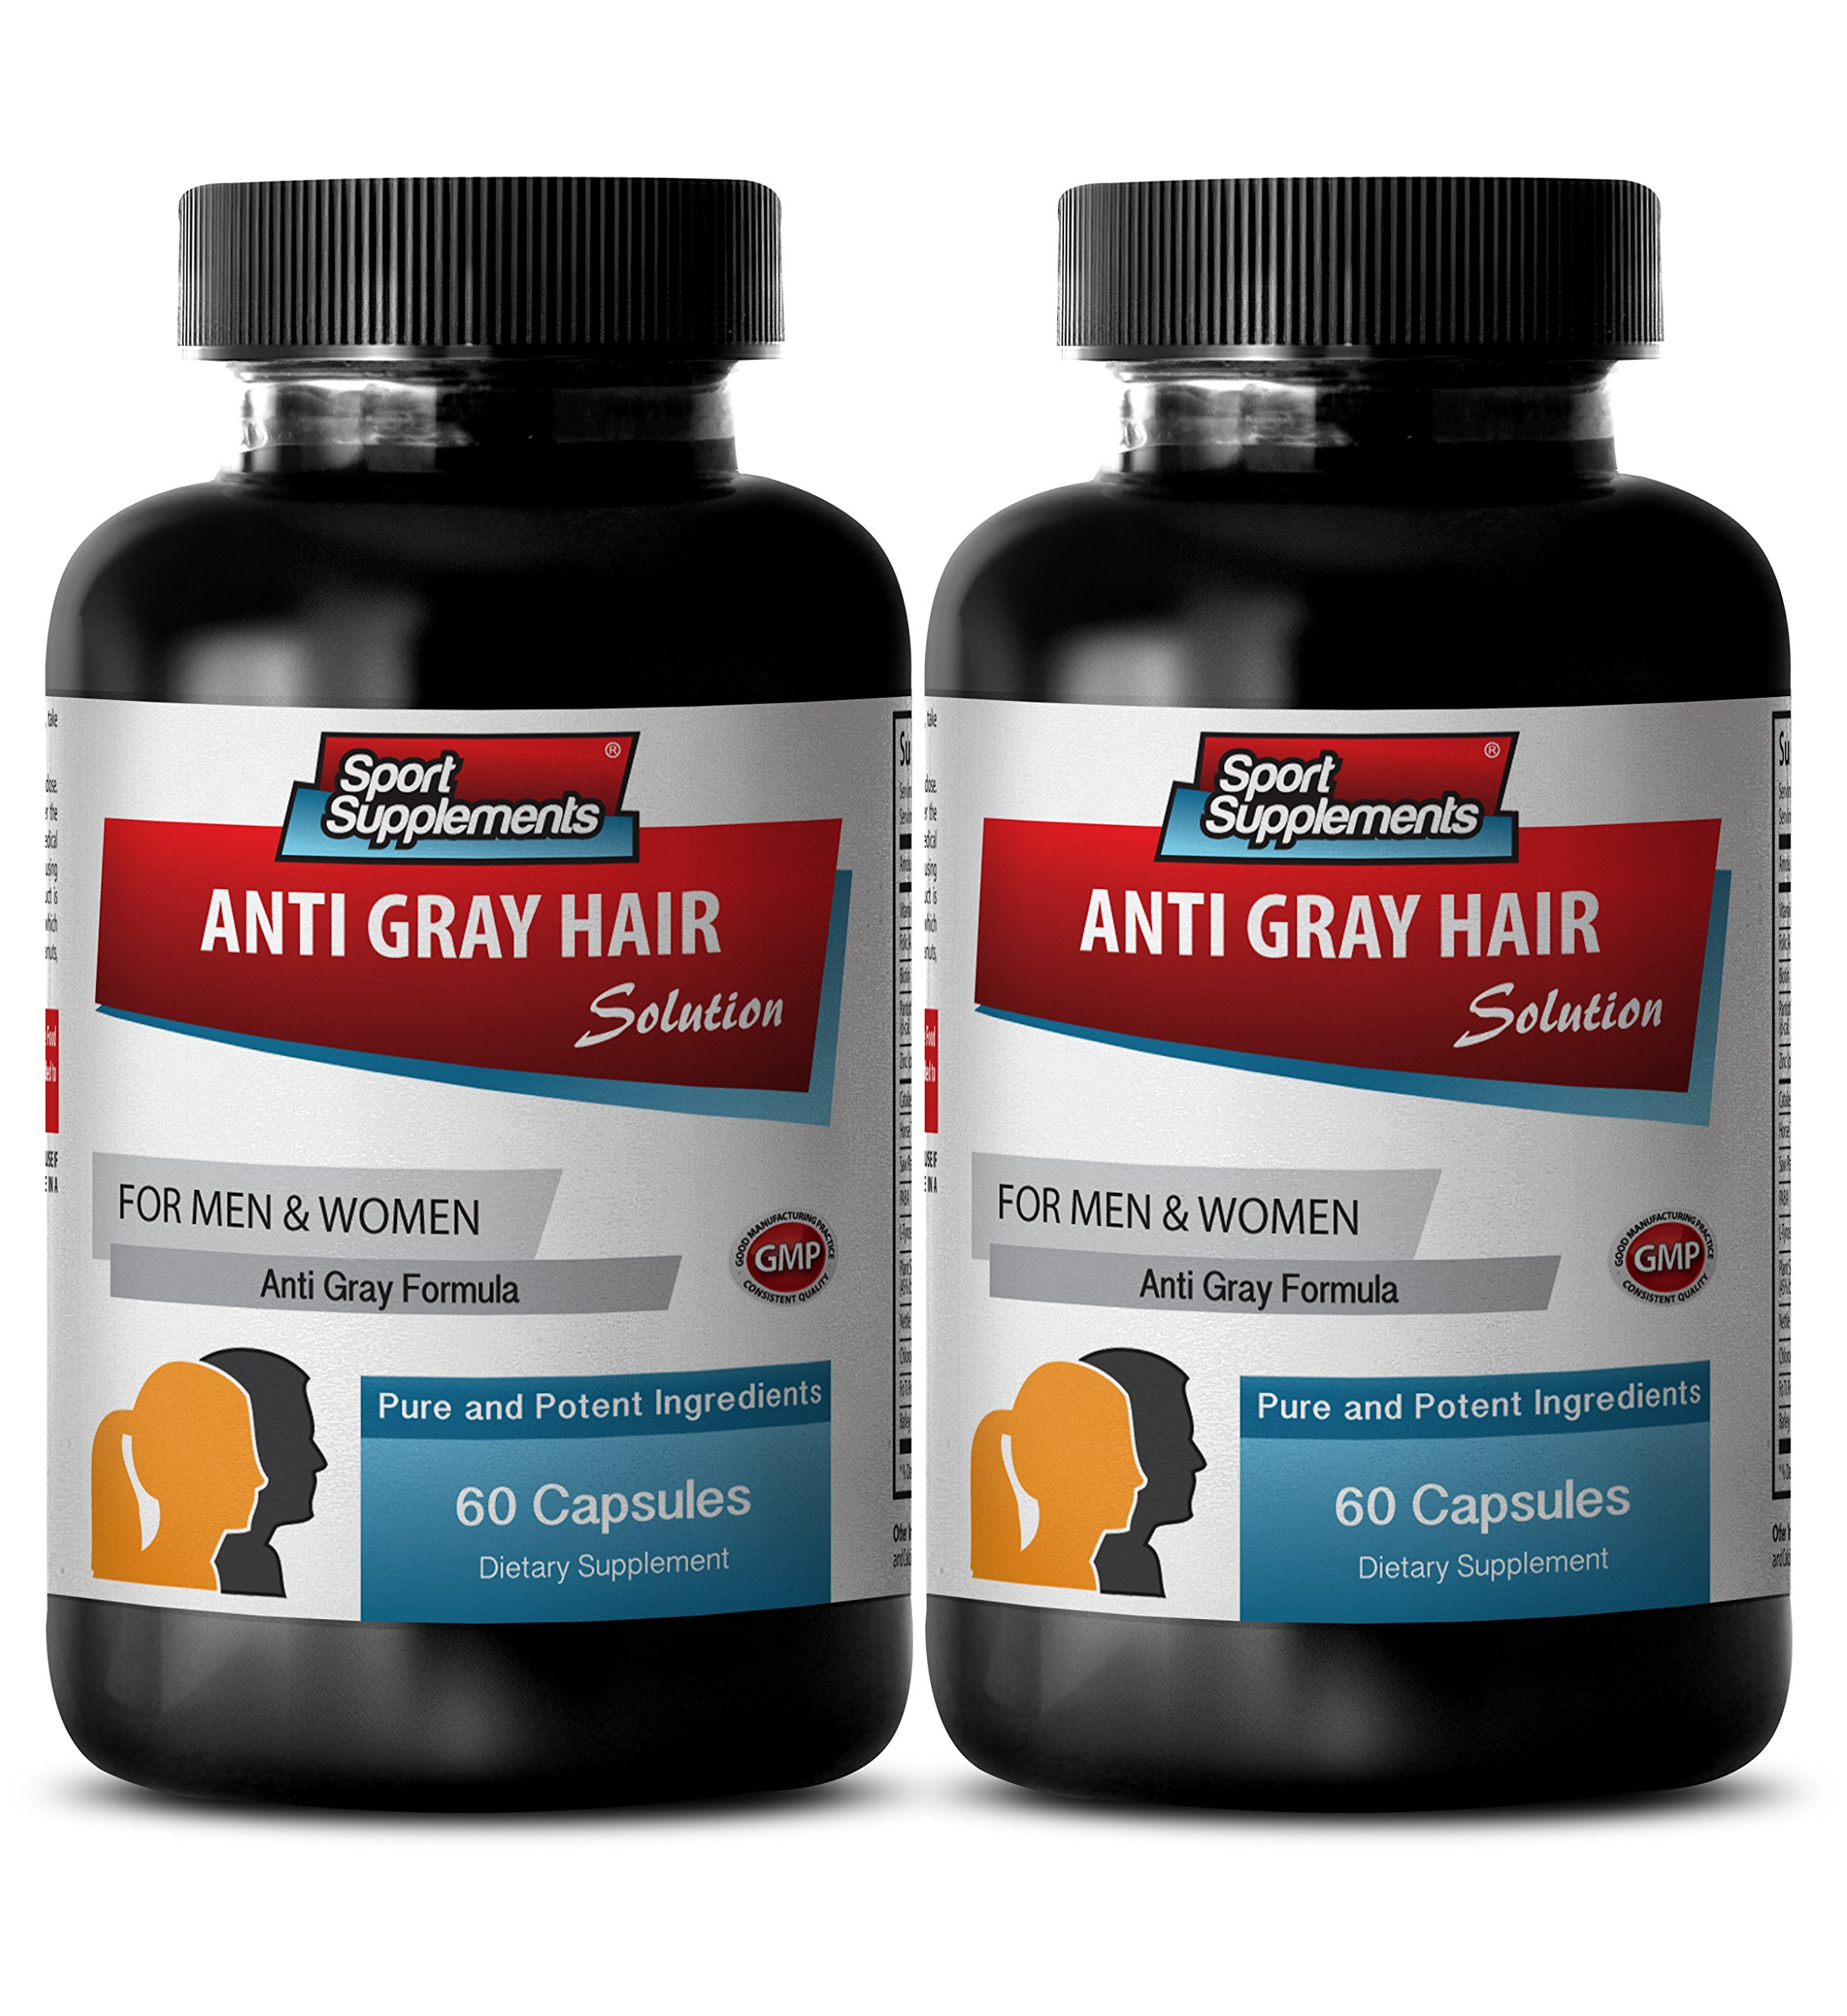 Gray hair remedy - ANTI GRAY HAIR NATURAL FORMULA for Men and Women - Zinc, Nettle, PABA - 2 Bottles 120 Capsules